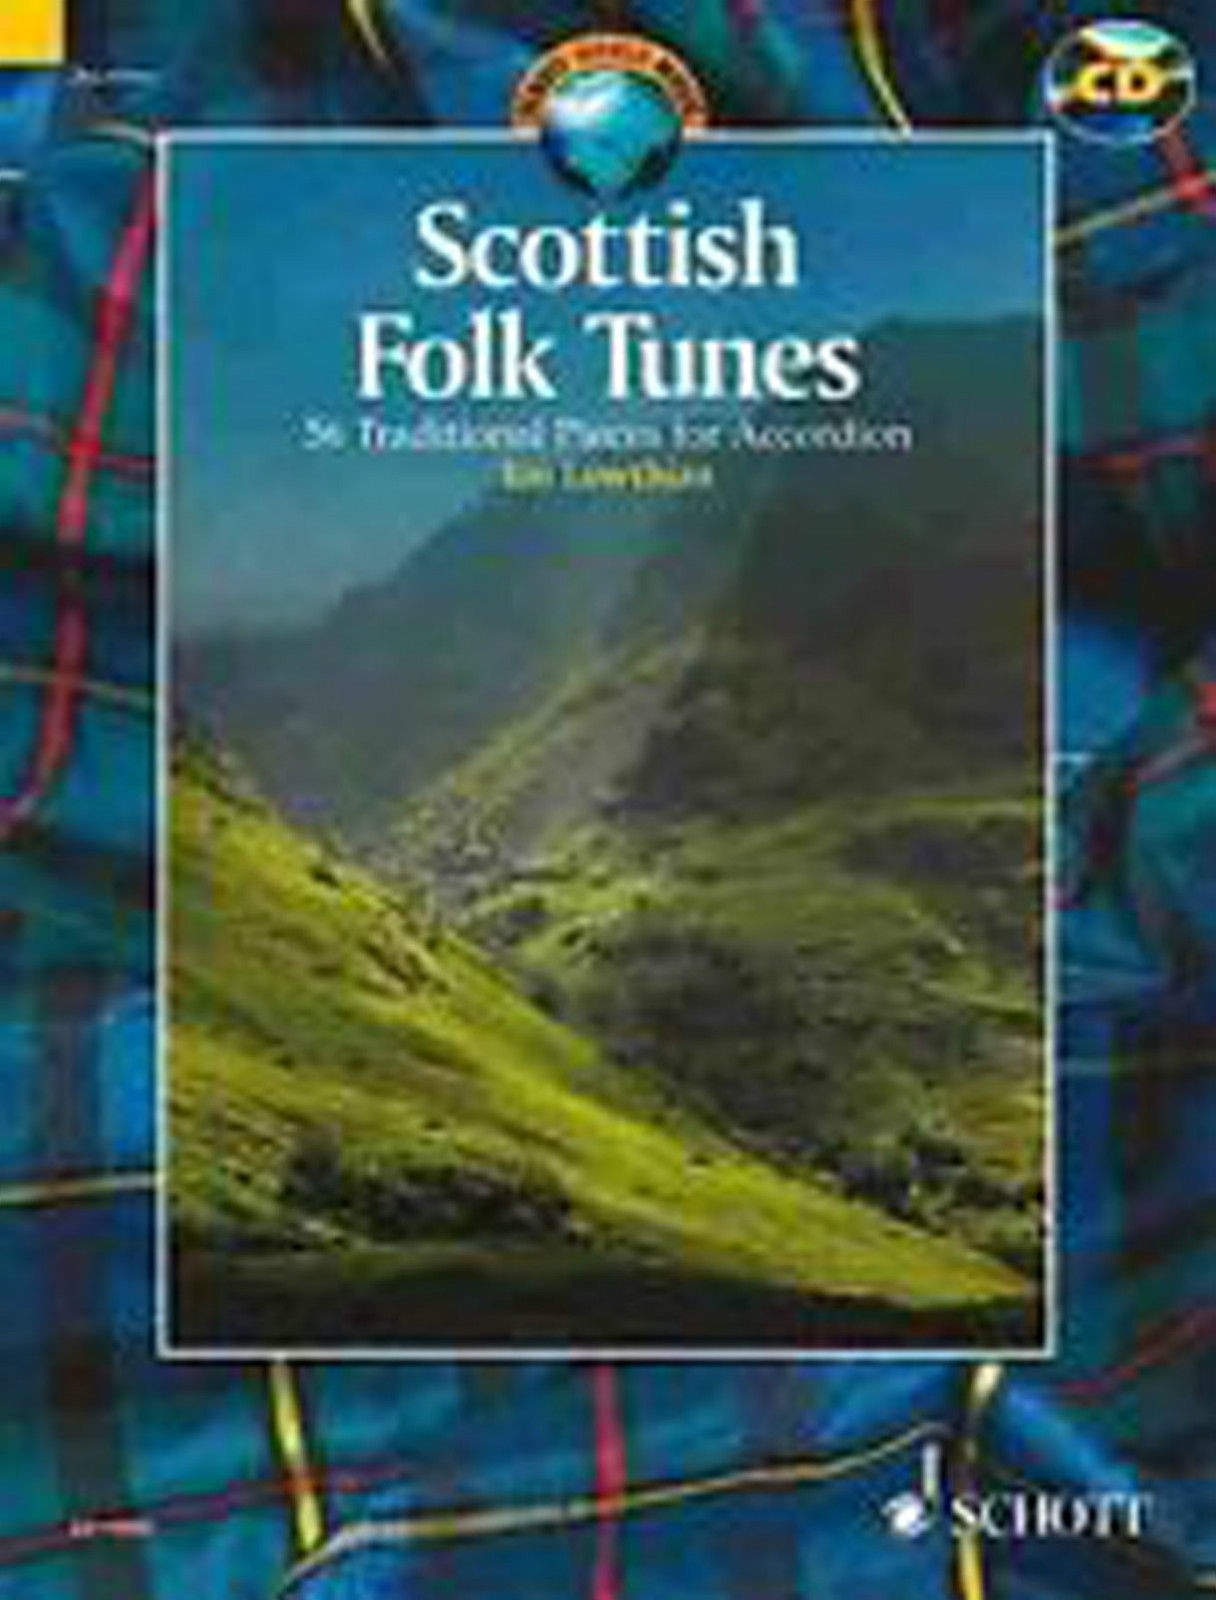 Scottish Folk Tunes Book CD 54 Traditional Pieces for Accordion Ian Lowthian B51